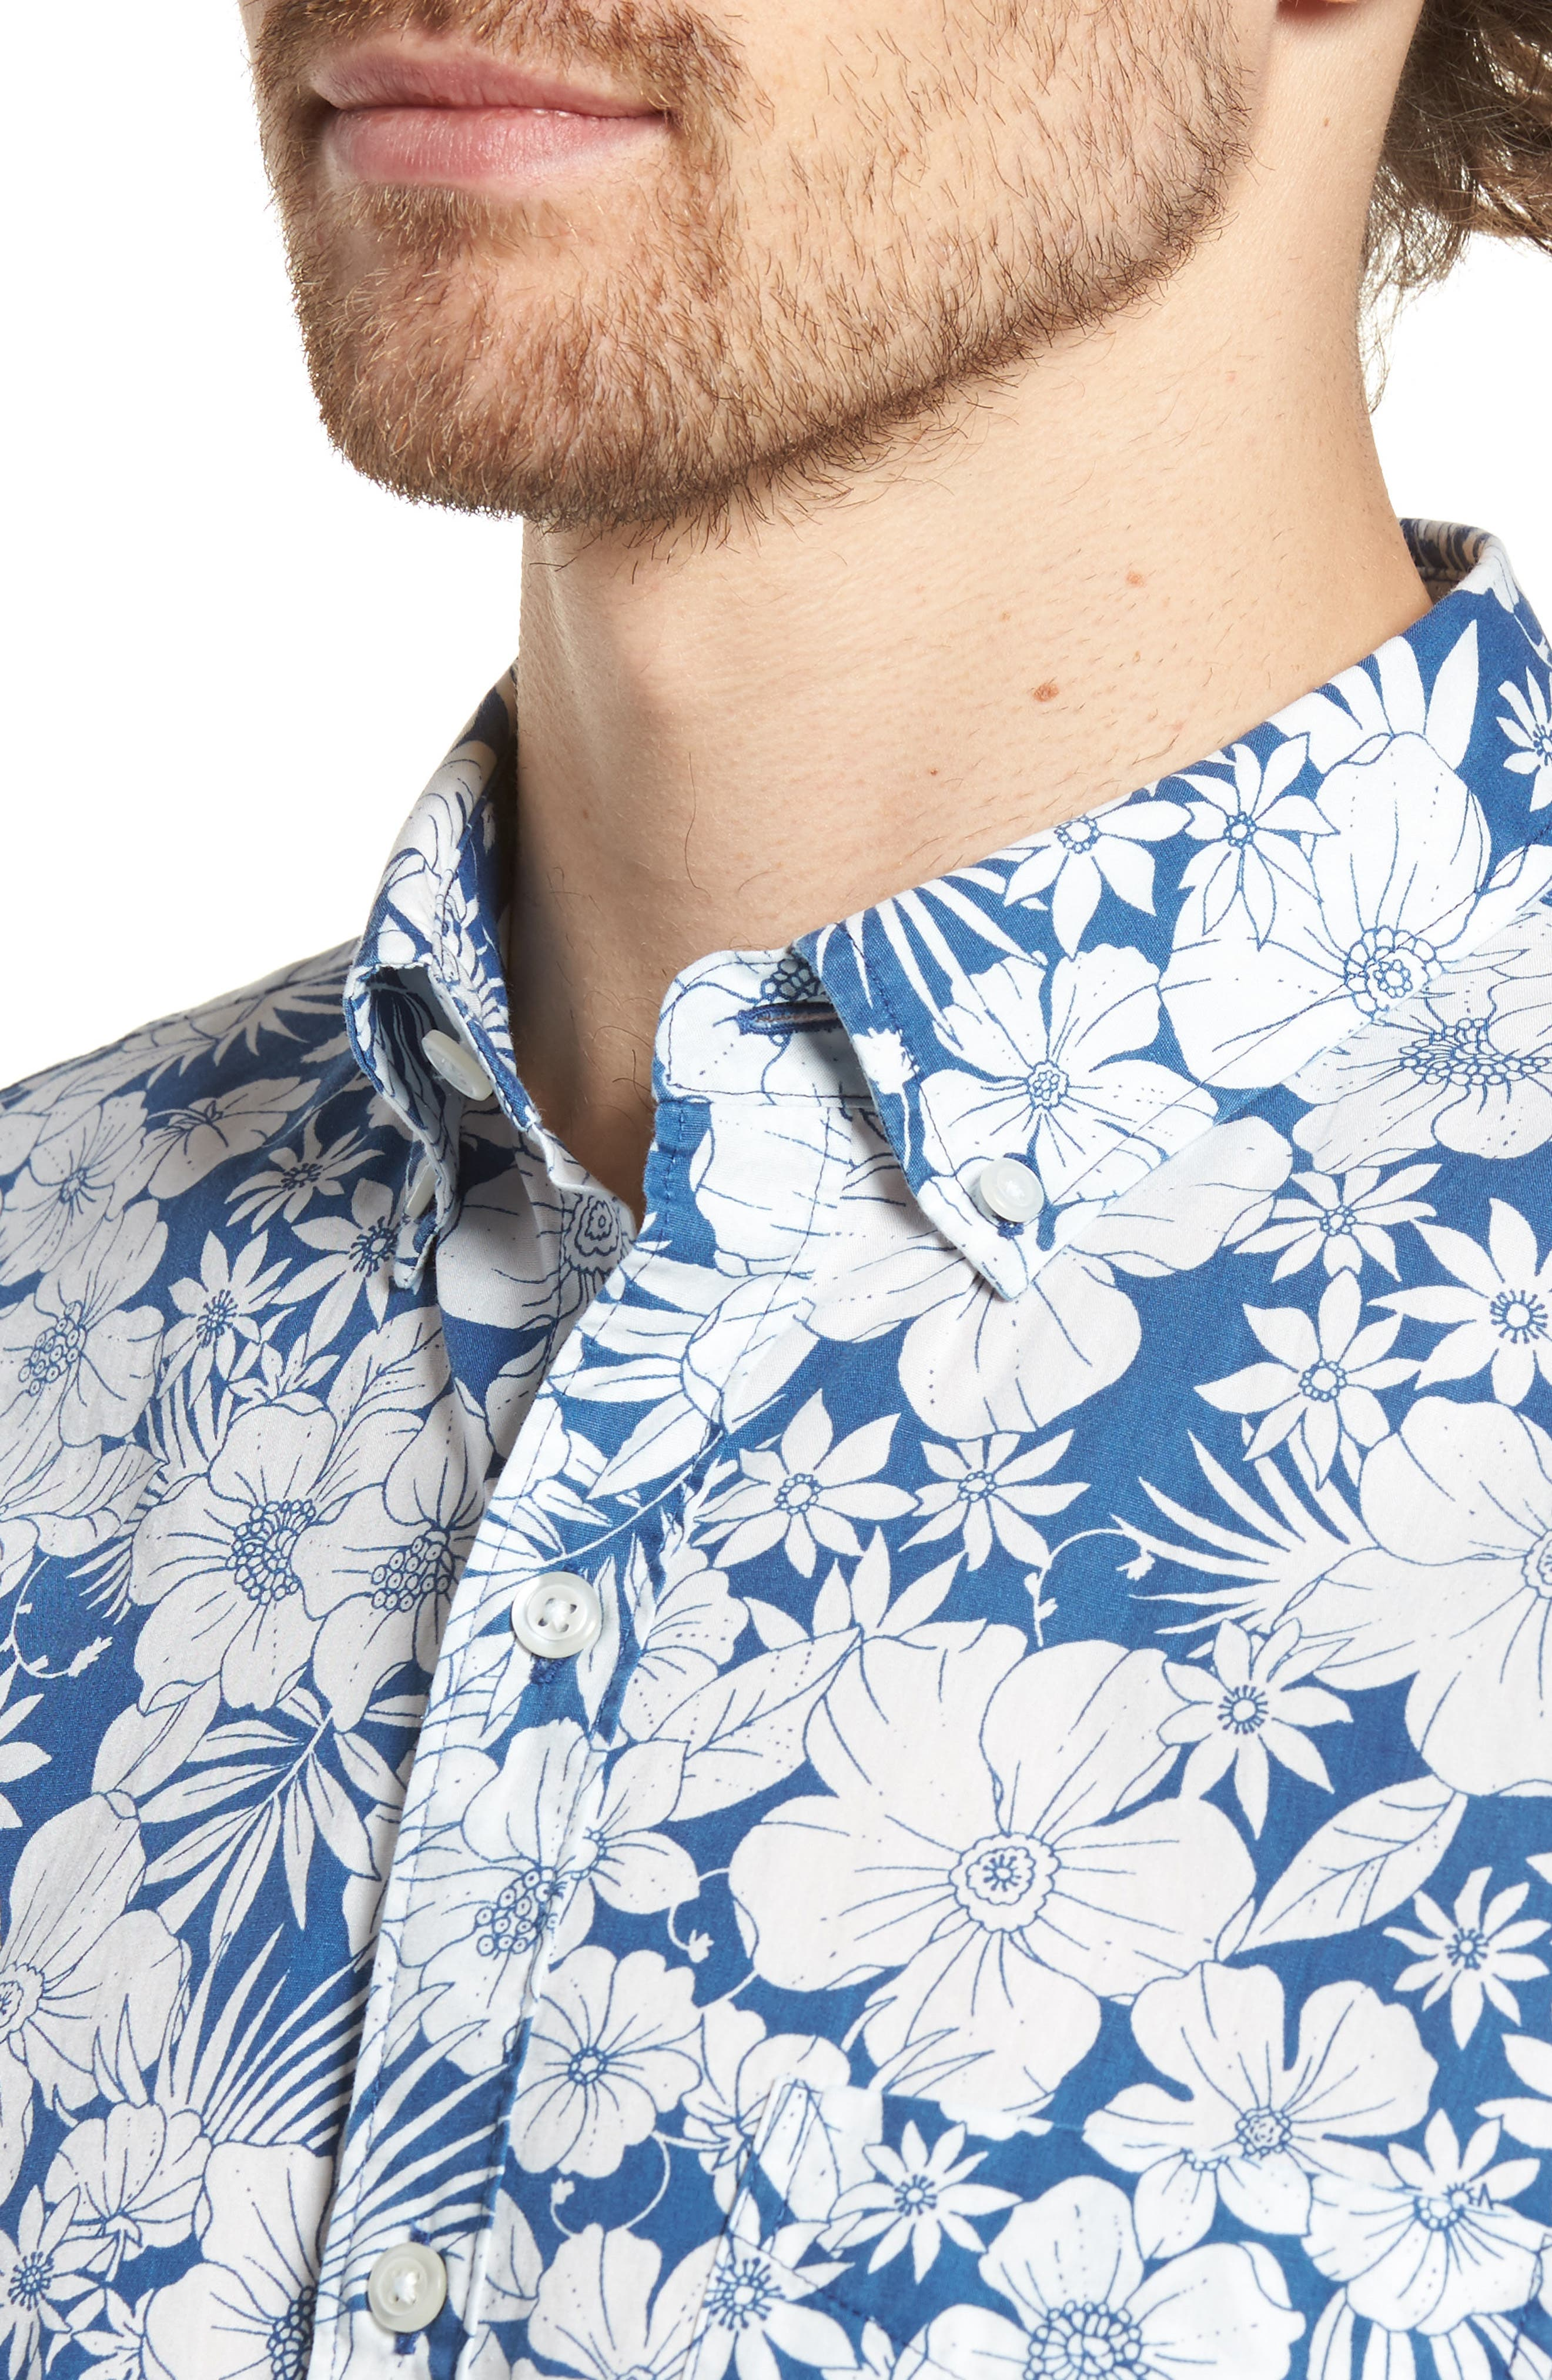 Slim Fit Print Short Sleeve Sport Shirt,                             Alternate thumbnail 2, color,                             Harland Floral - Maritime Blue